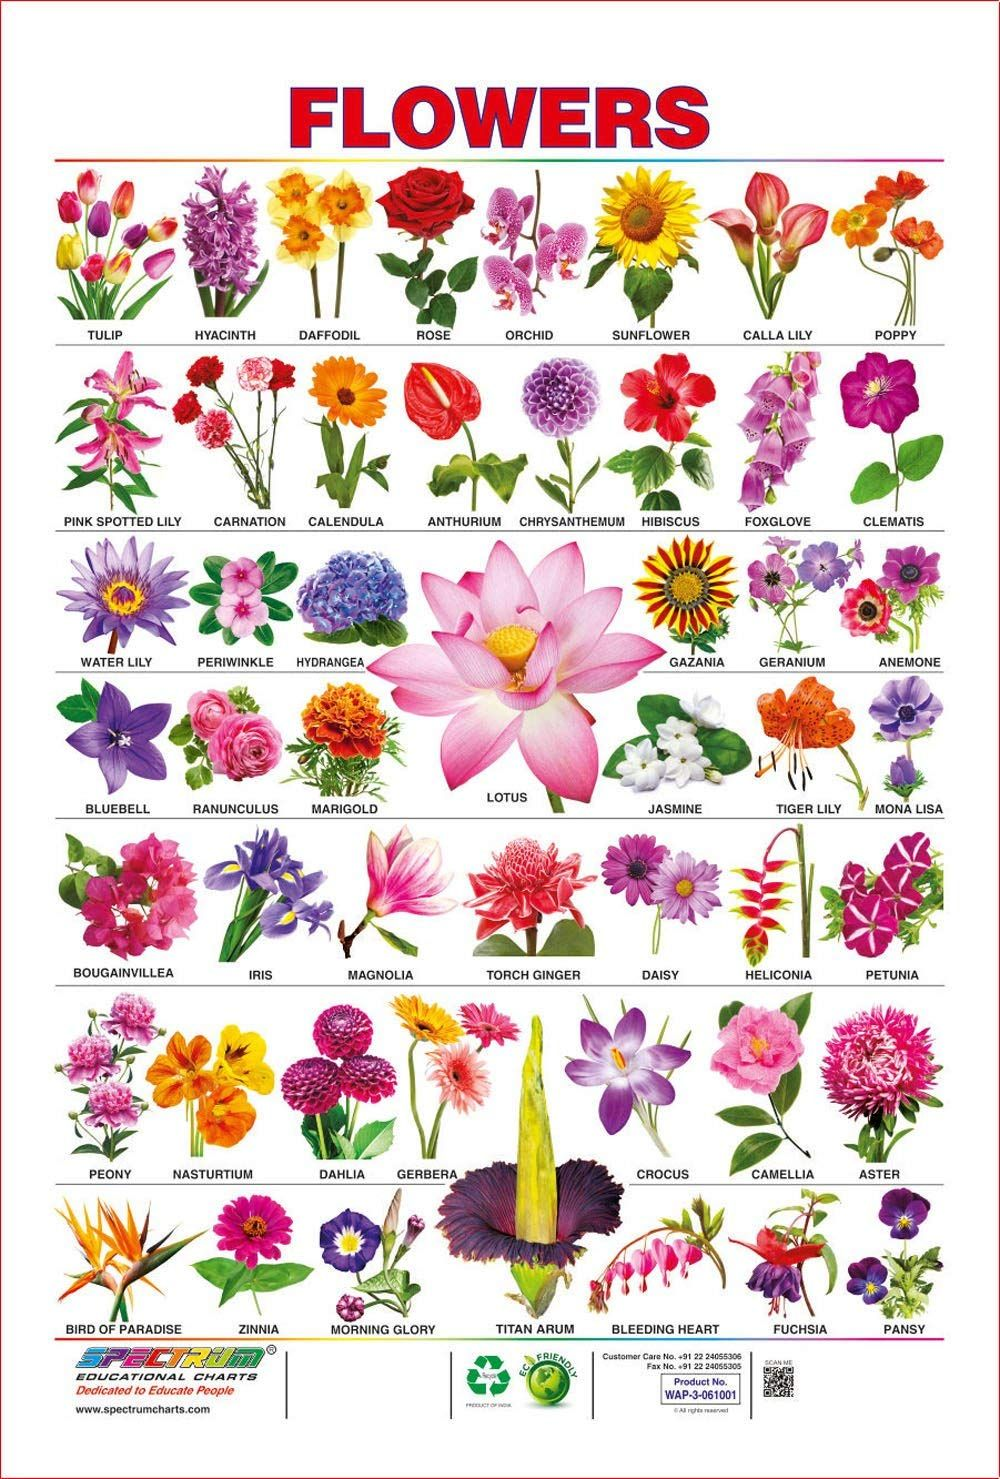 Spectrum Pre School Kids Learning Laminated Flowers Name Wall Hanging Chart Amazon Co Uk Office Prod Pretty Flower Names Flower Images With Name Flower Names